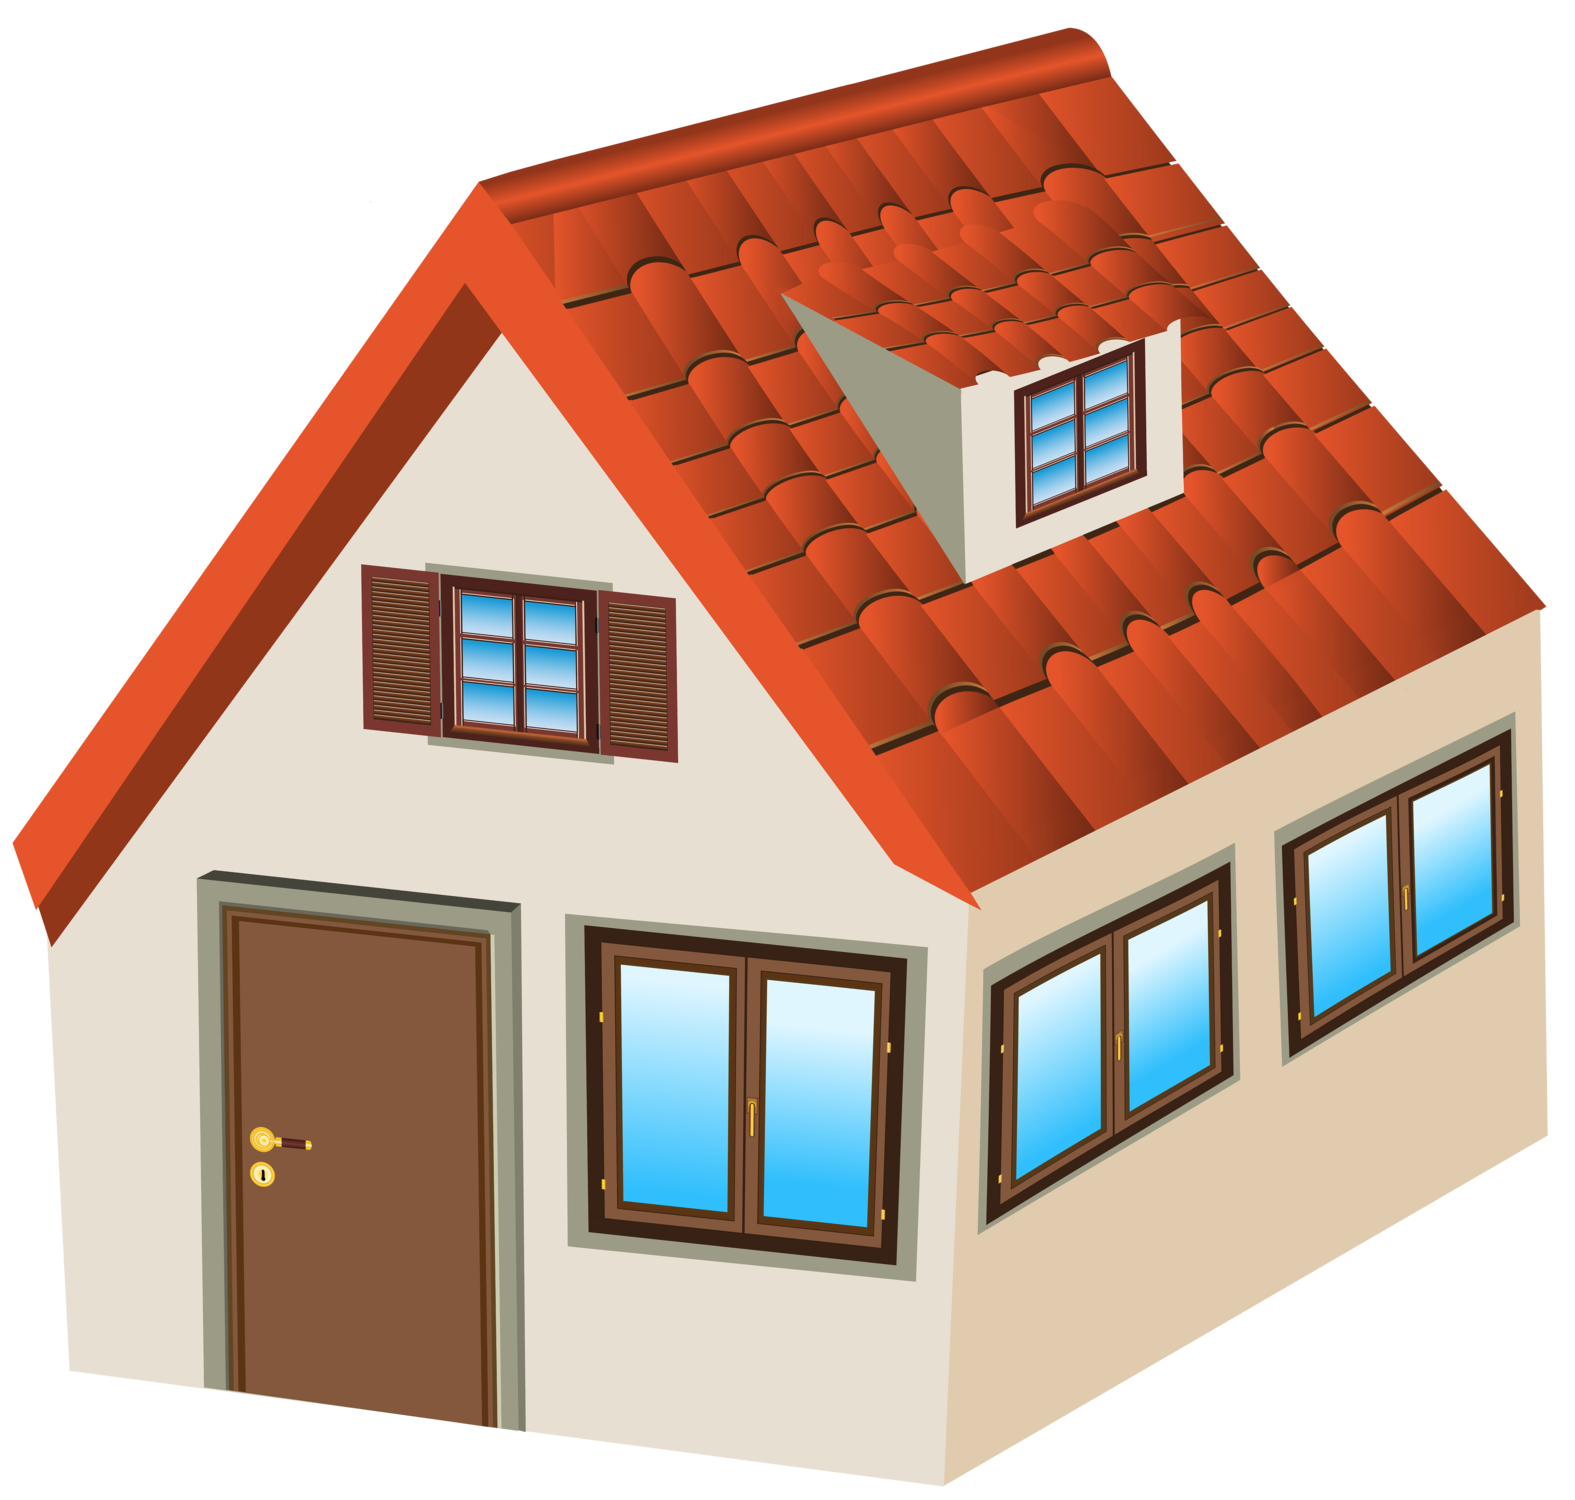 clip clipart houses downloads clipartpng link